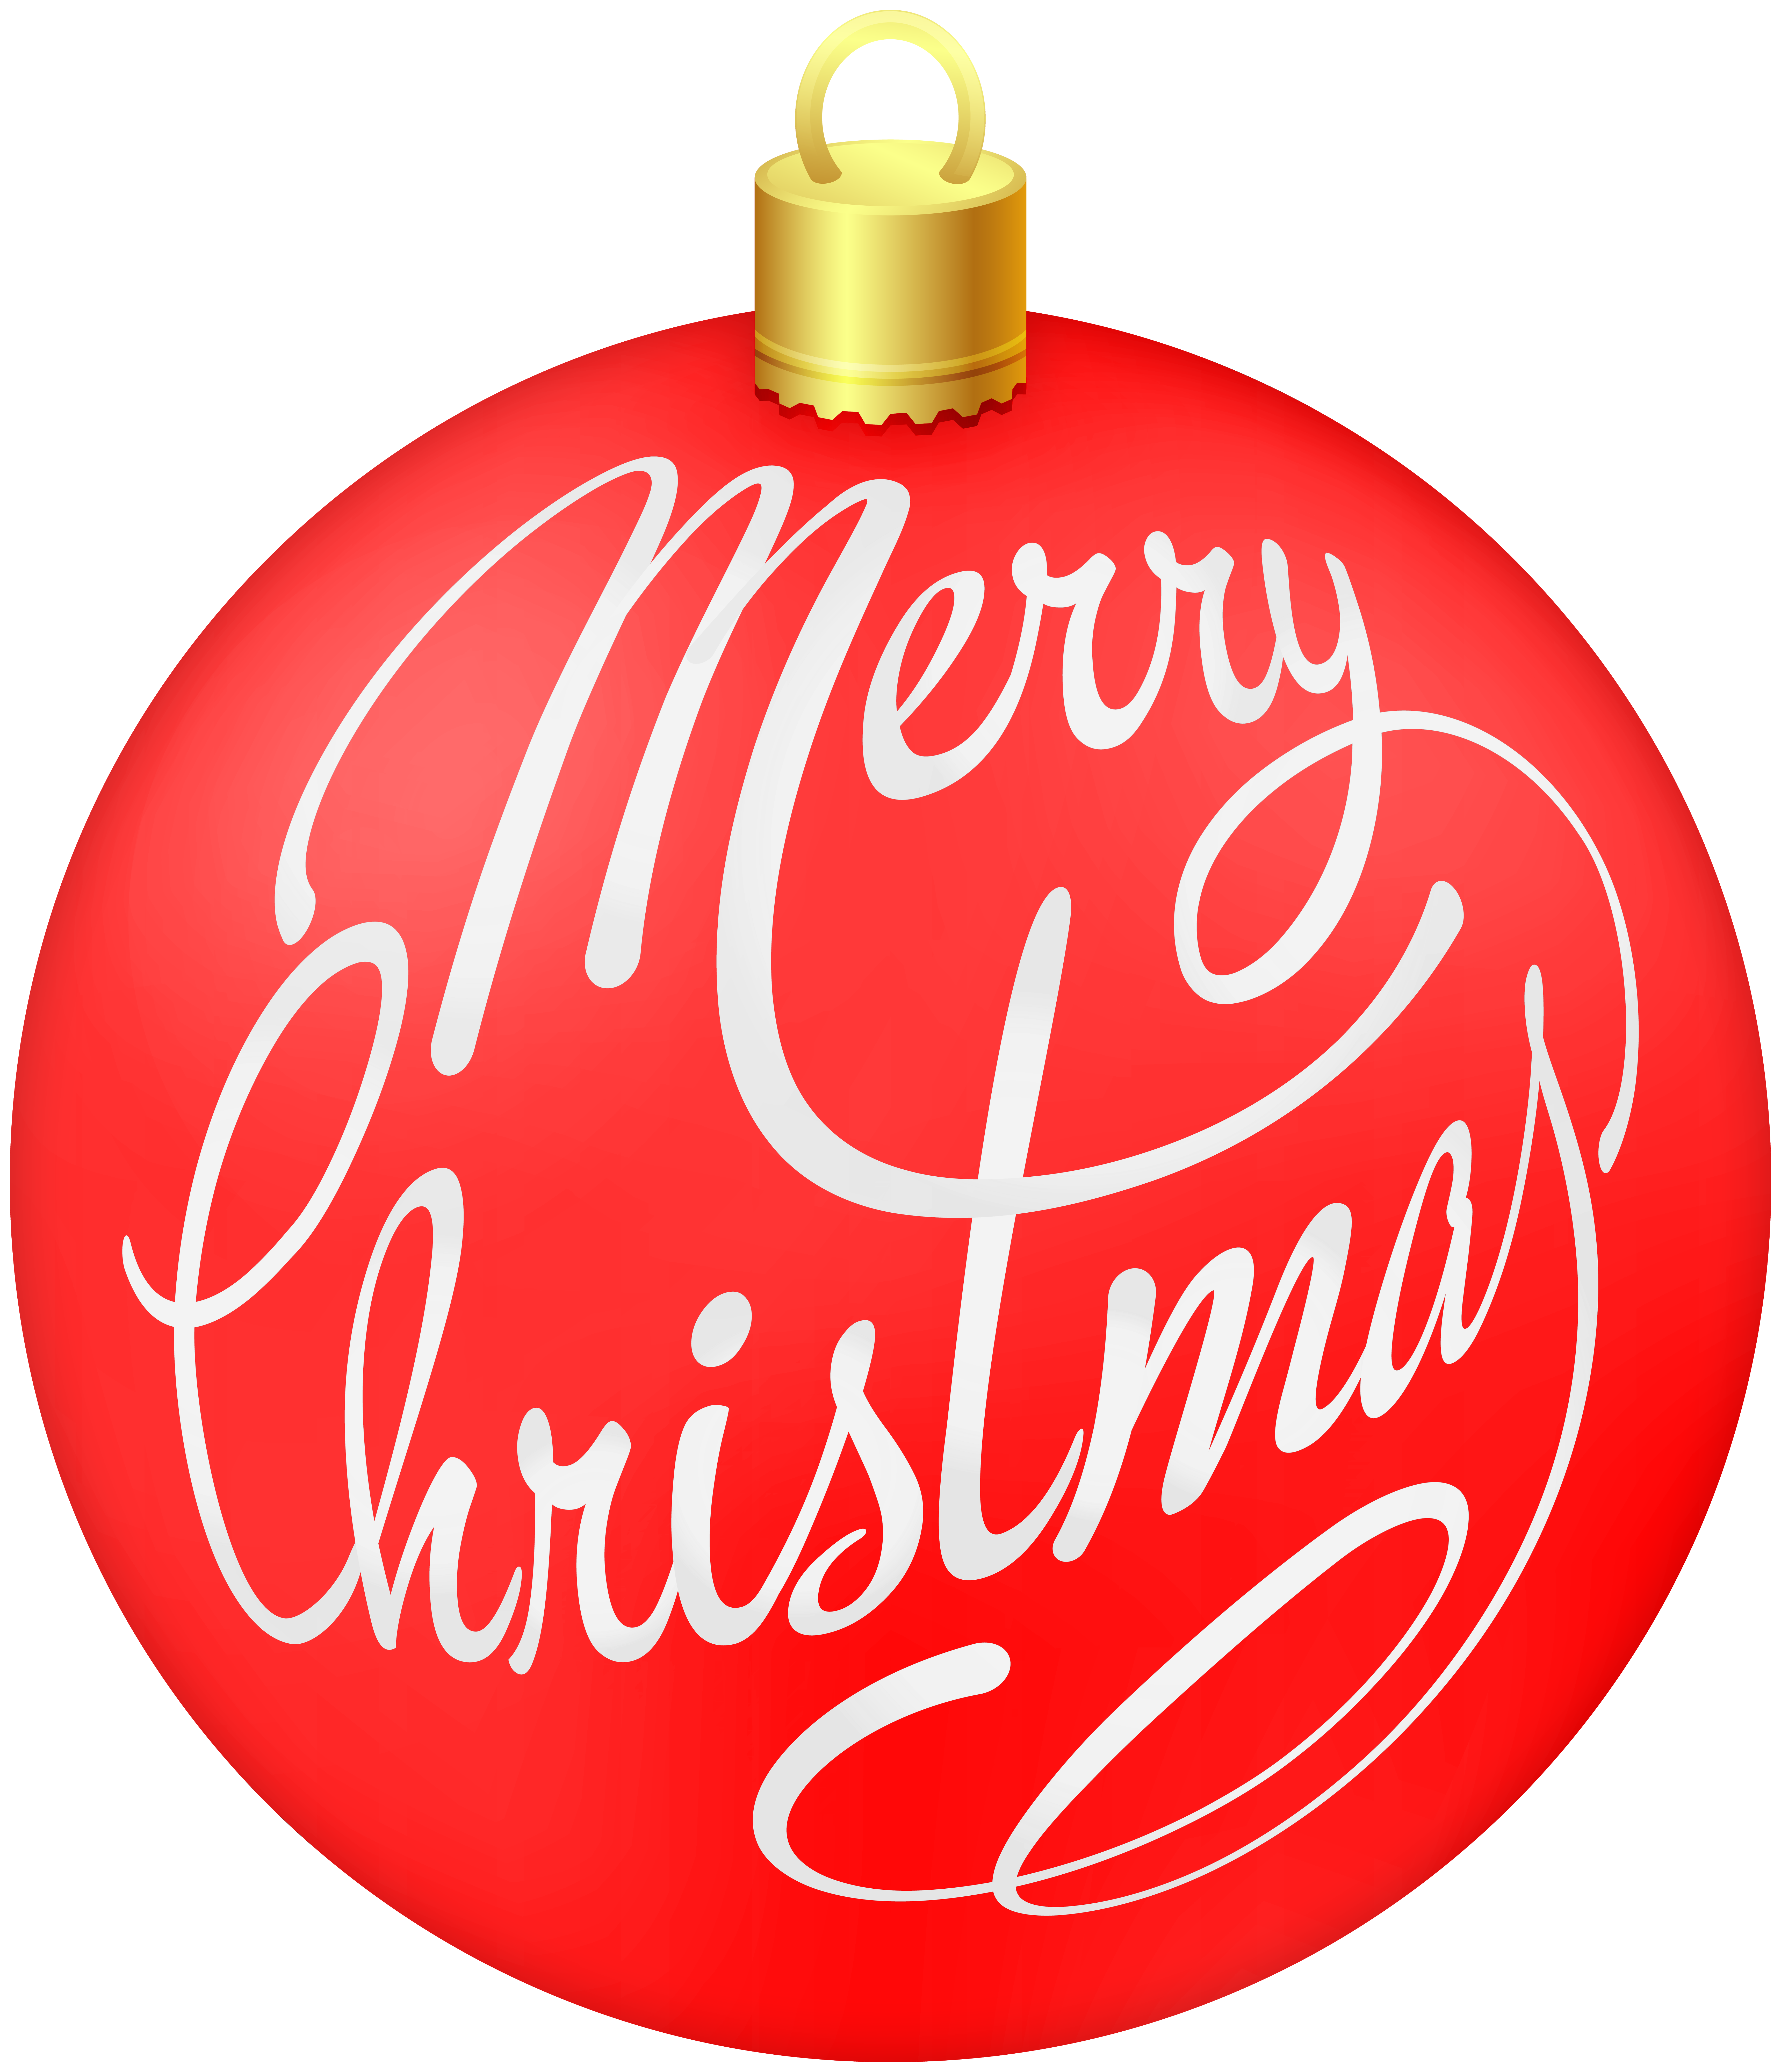 Red Merry Christmas Ornament Clip Art Image.